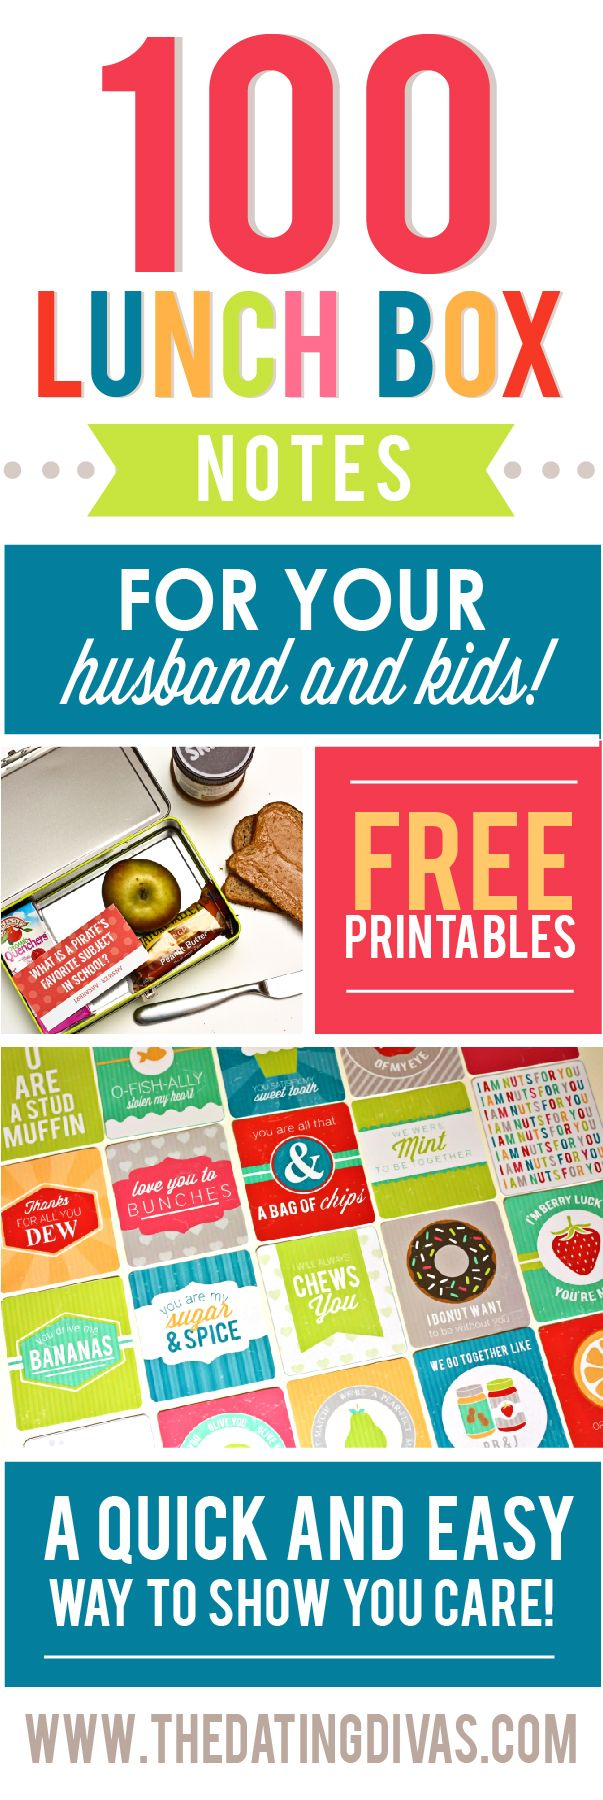 100 Lunch box notes for both the kids and husband